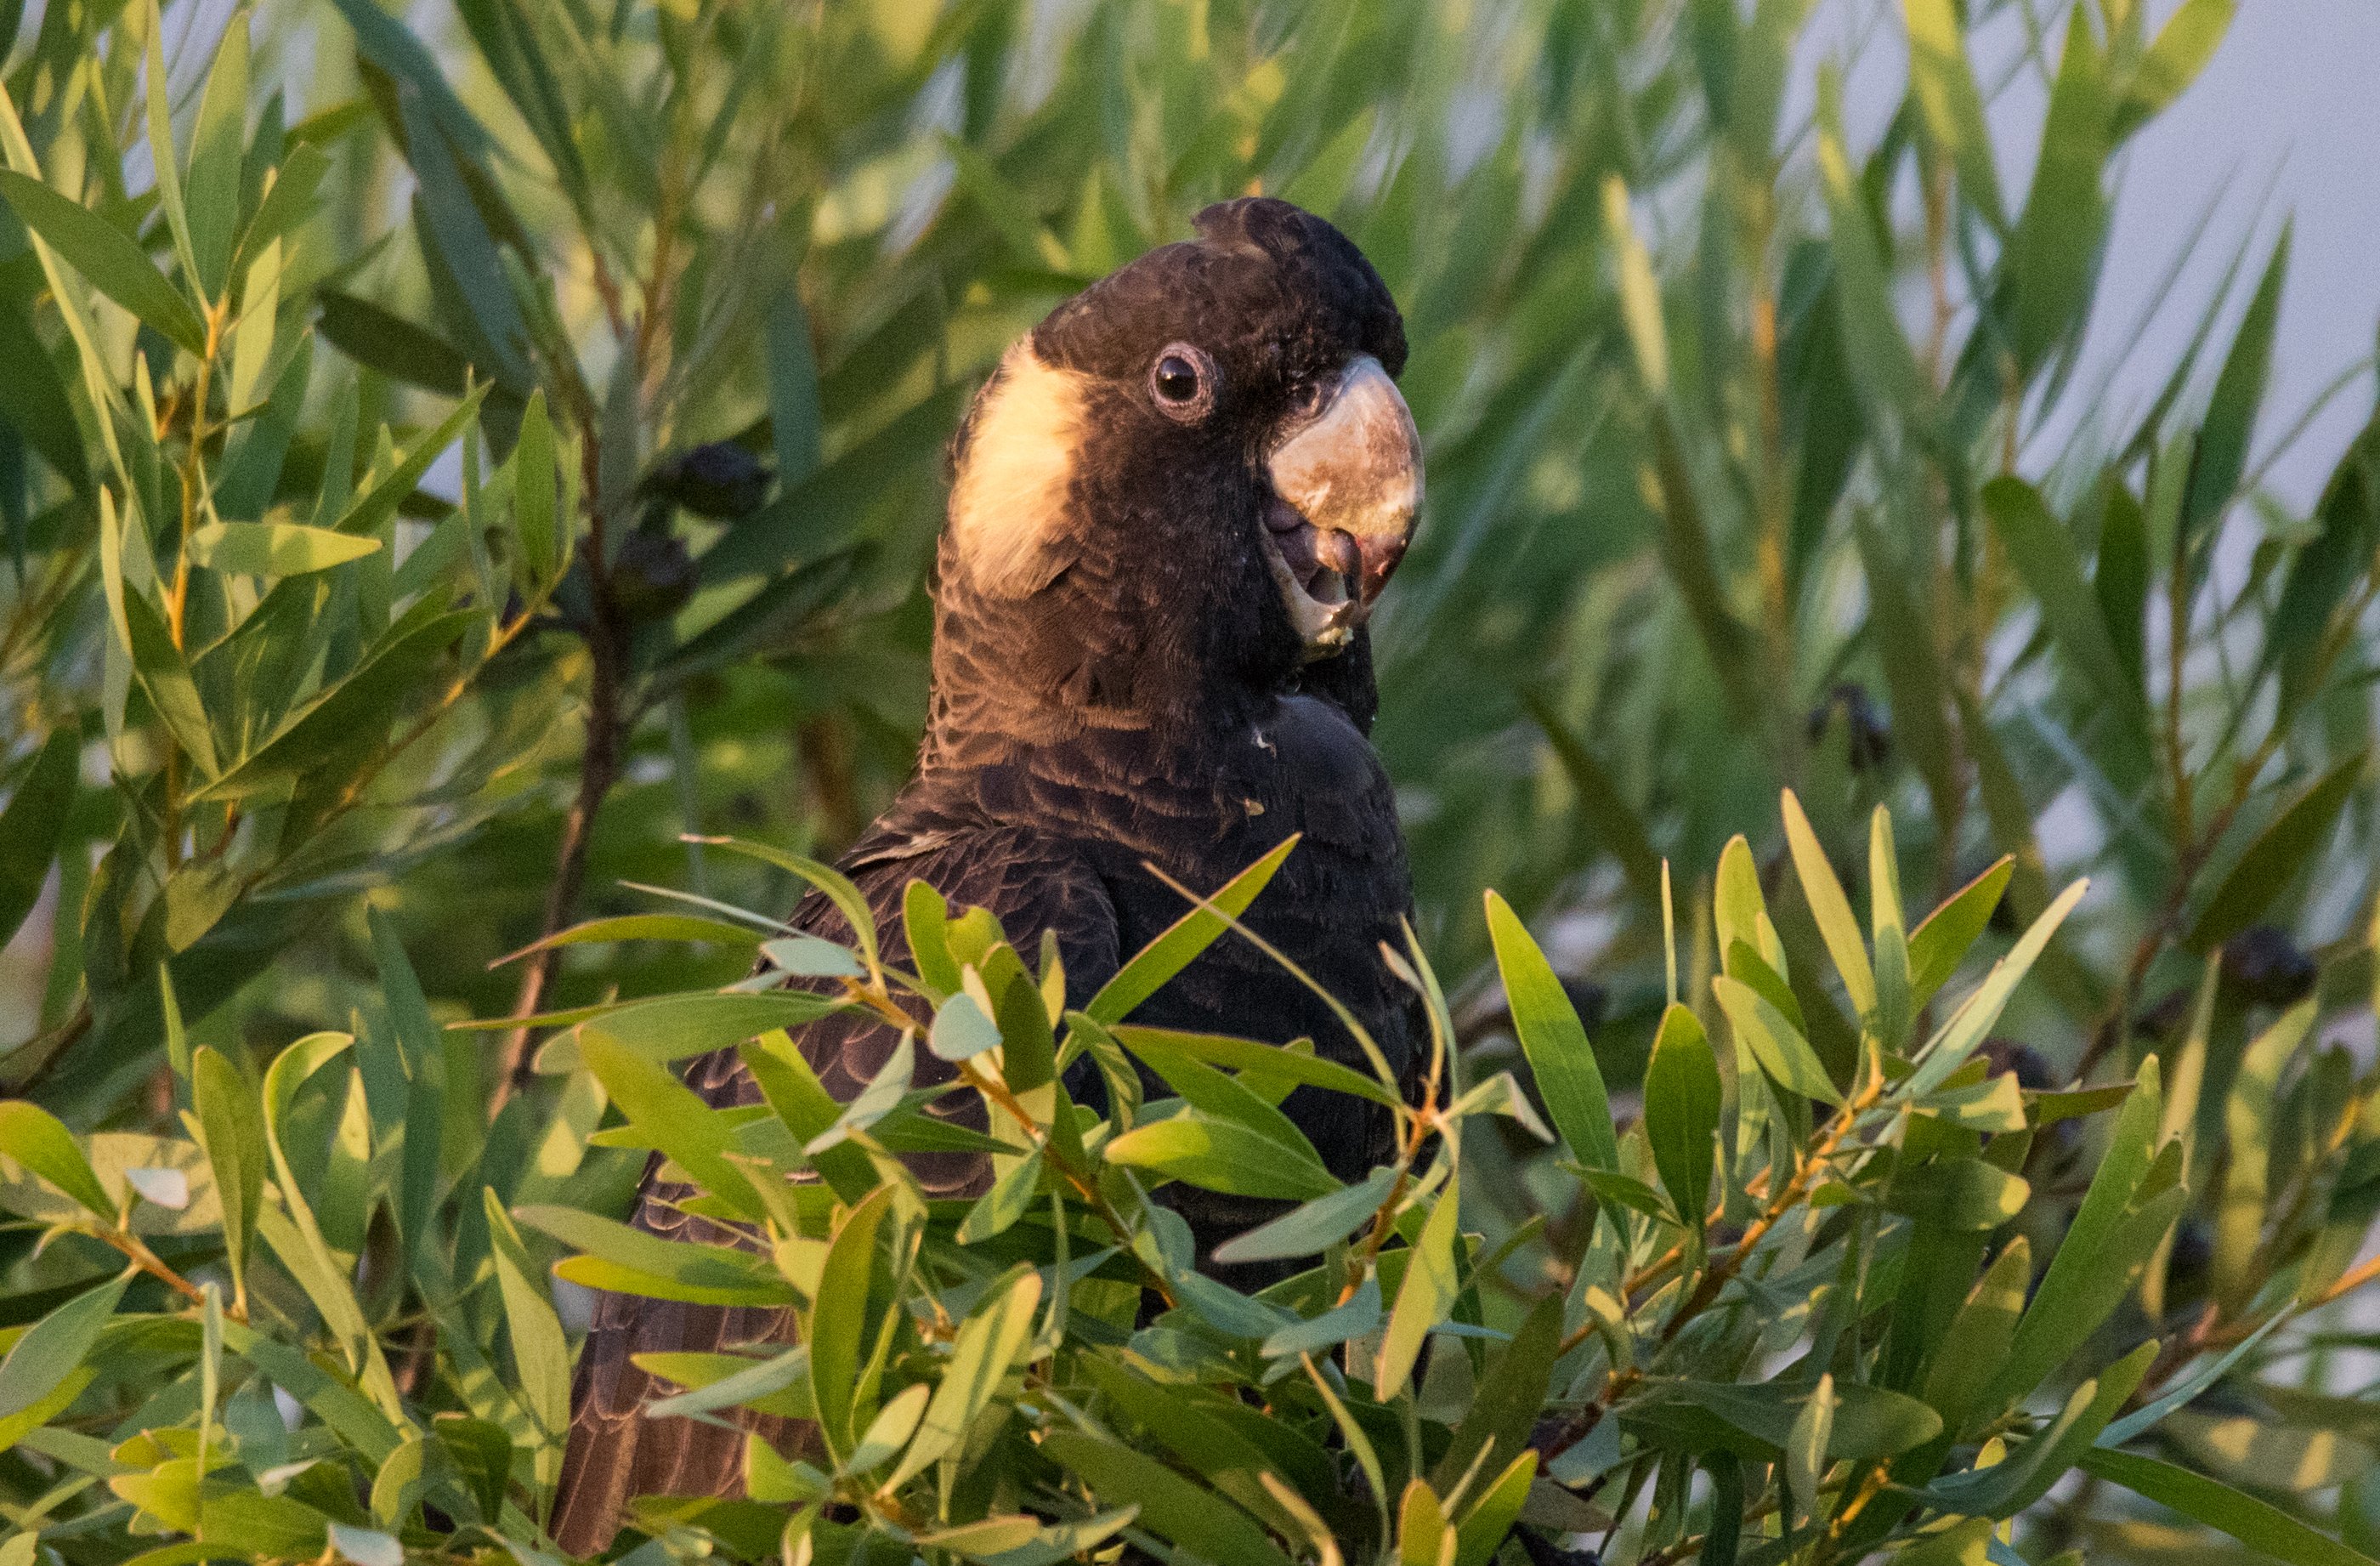 John Langmead_Yellow tailed black cockatoo_8253_20190109_Online